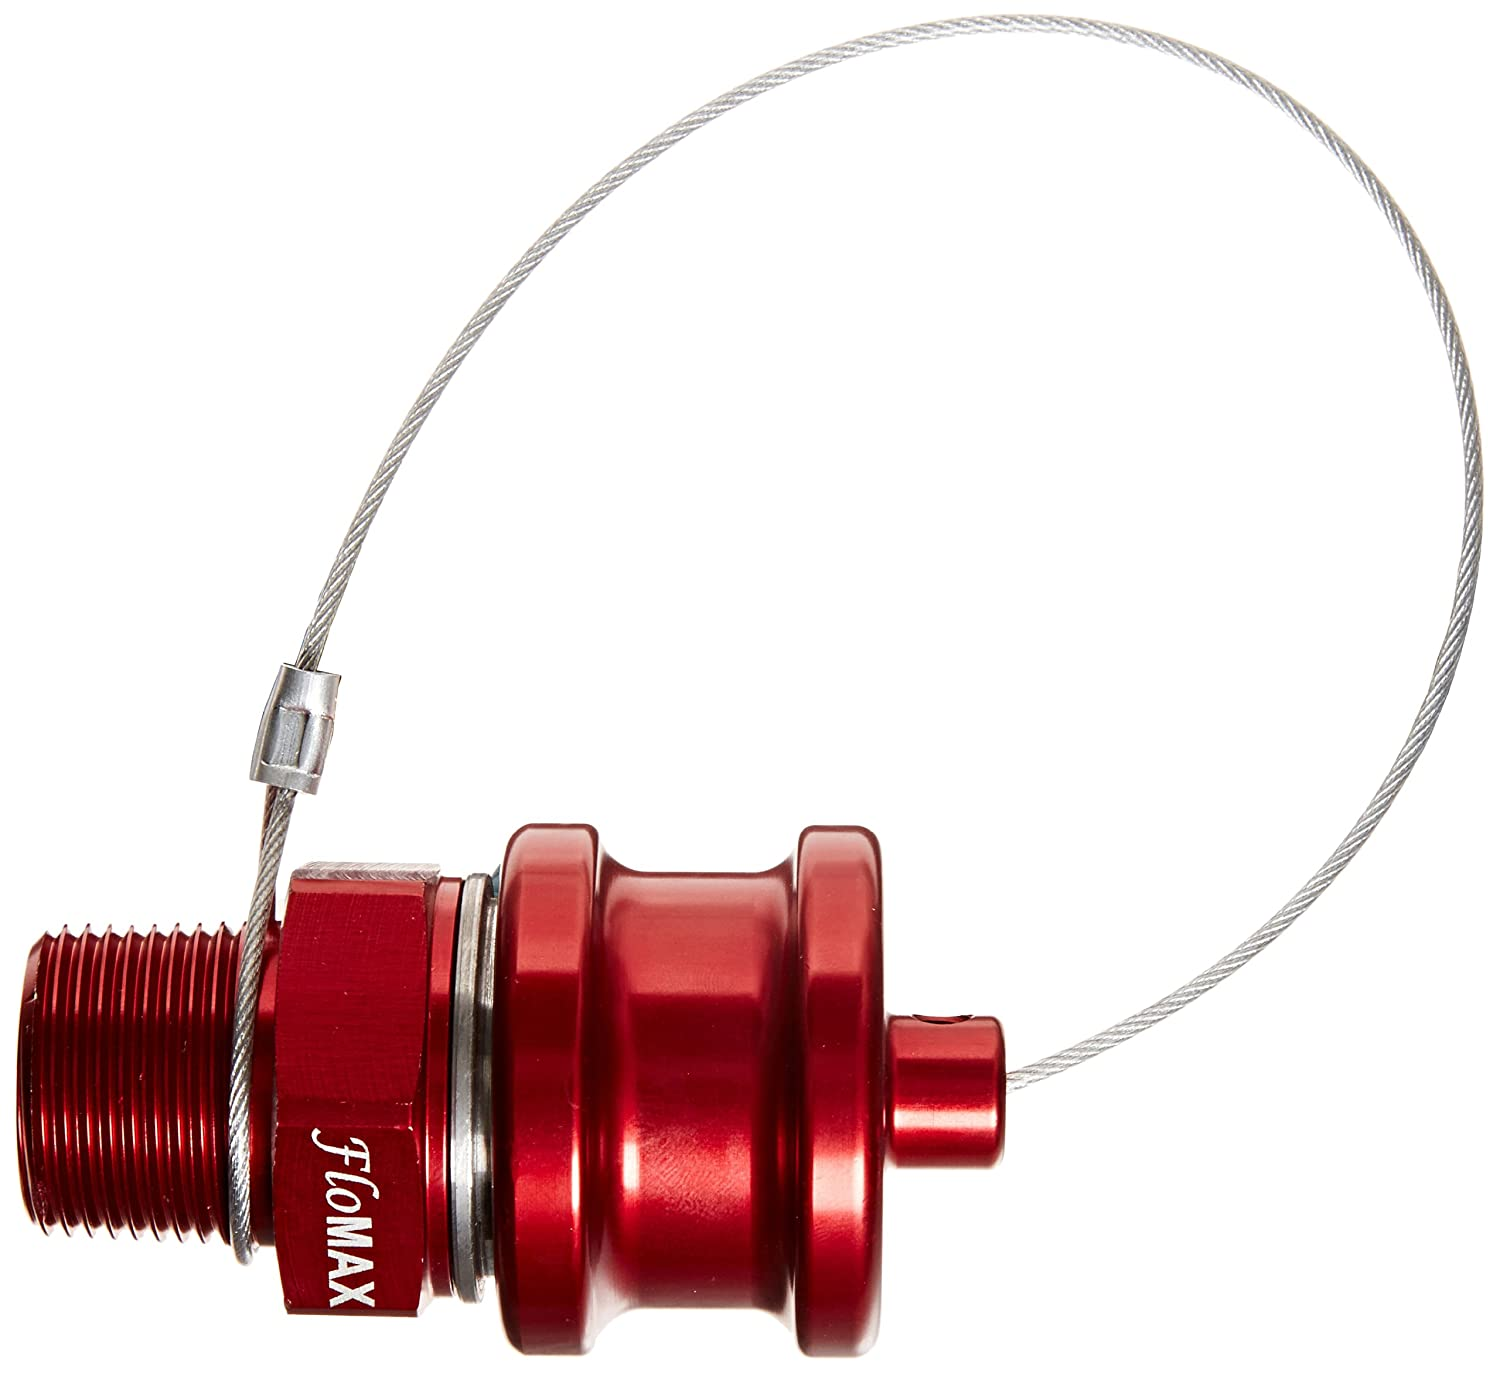 Dixon ERS-C Red Anodized Aluminum Dry Disconnect Fitting Flomax Standard Engine Oil Receiver with Cap 3//4 NPT Male